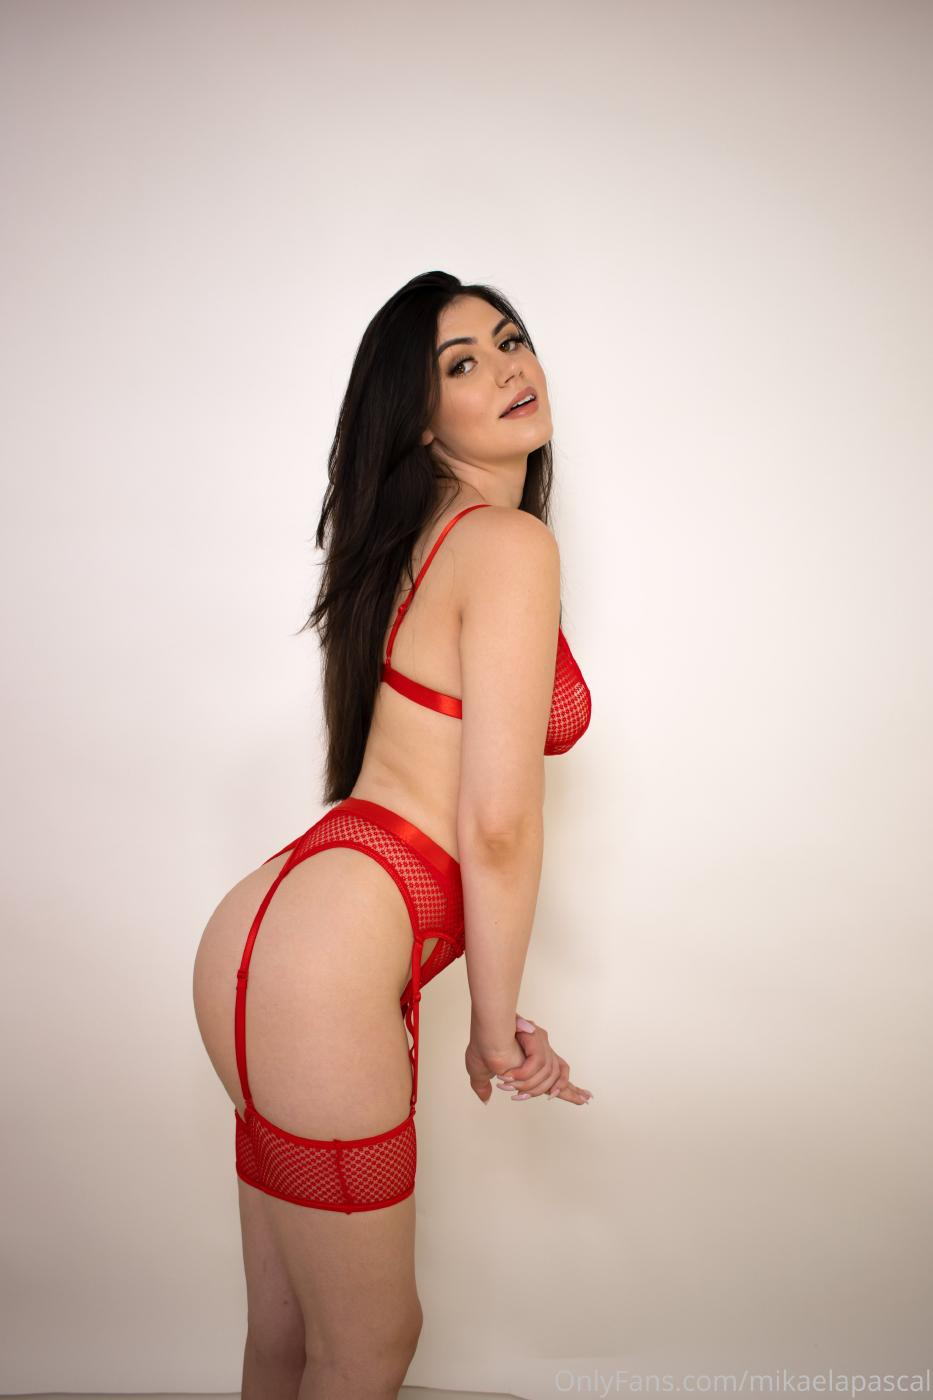 Mikaela Pascal Red Lingerie Onlyfans Set Leaked 0003